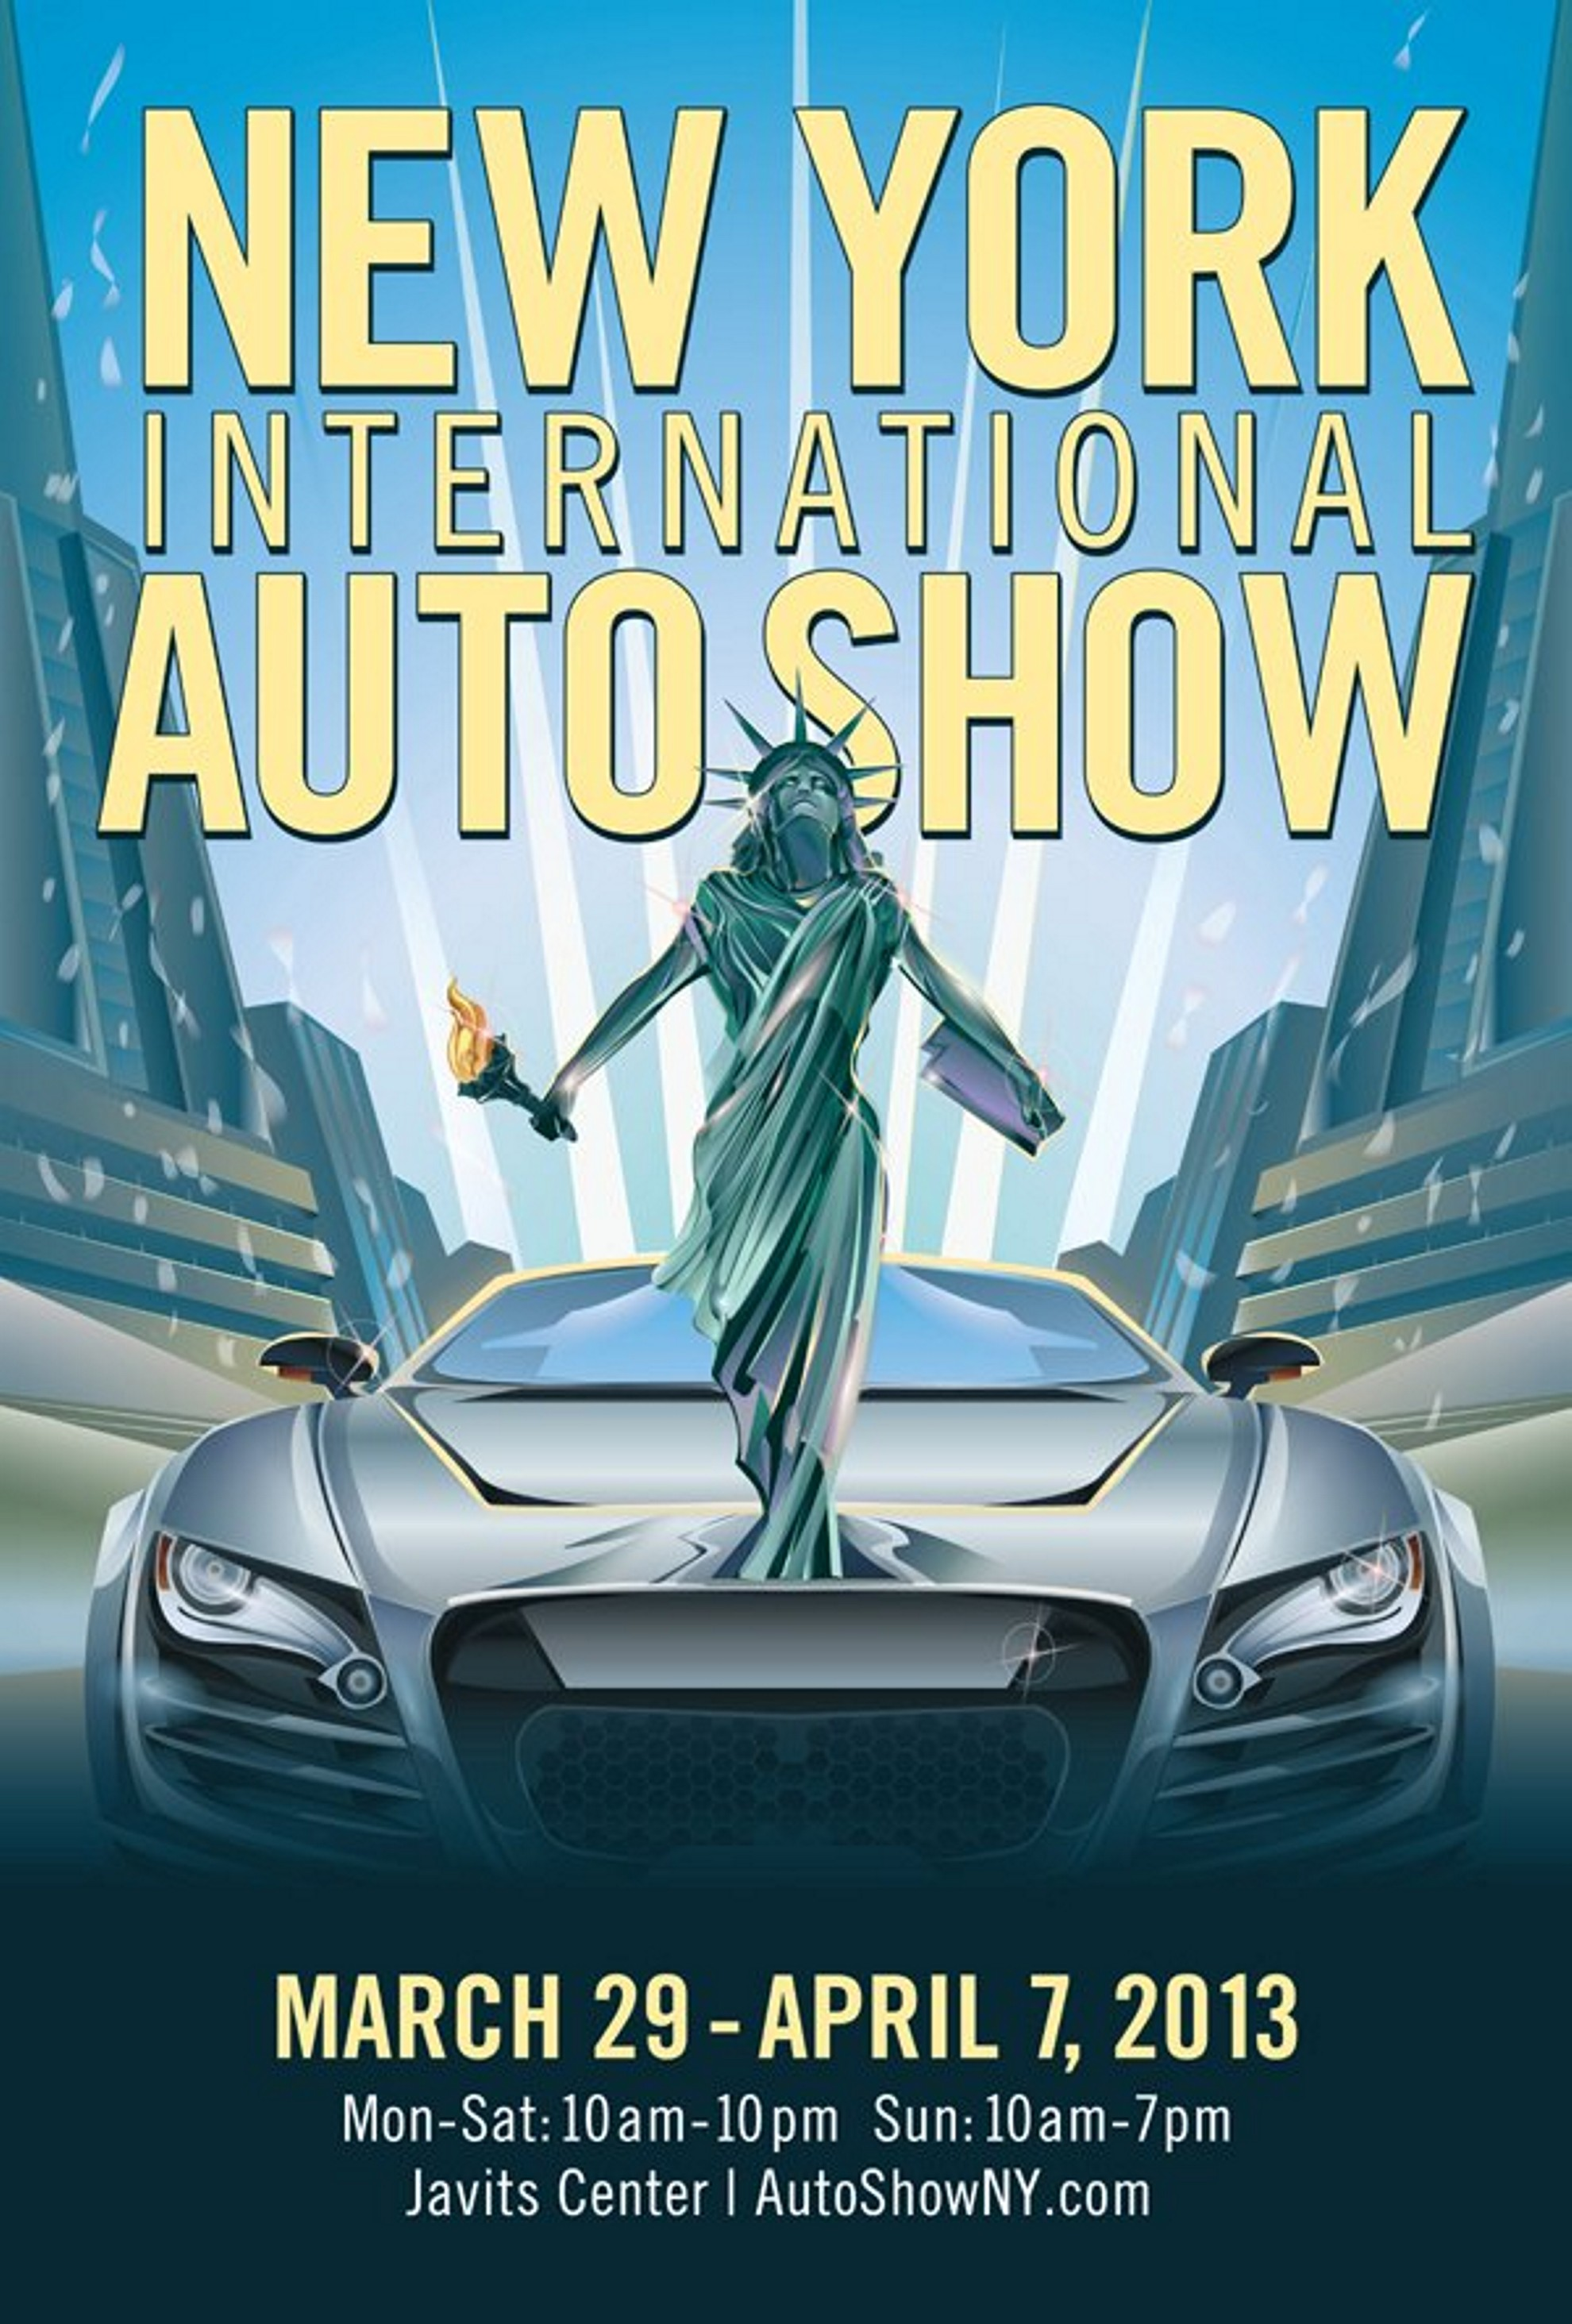 NEW YORK AUTO SHOW DEBUTS ARTWORK AND POSTER - Nyc car show javits center